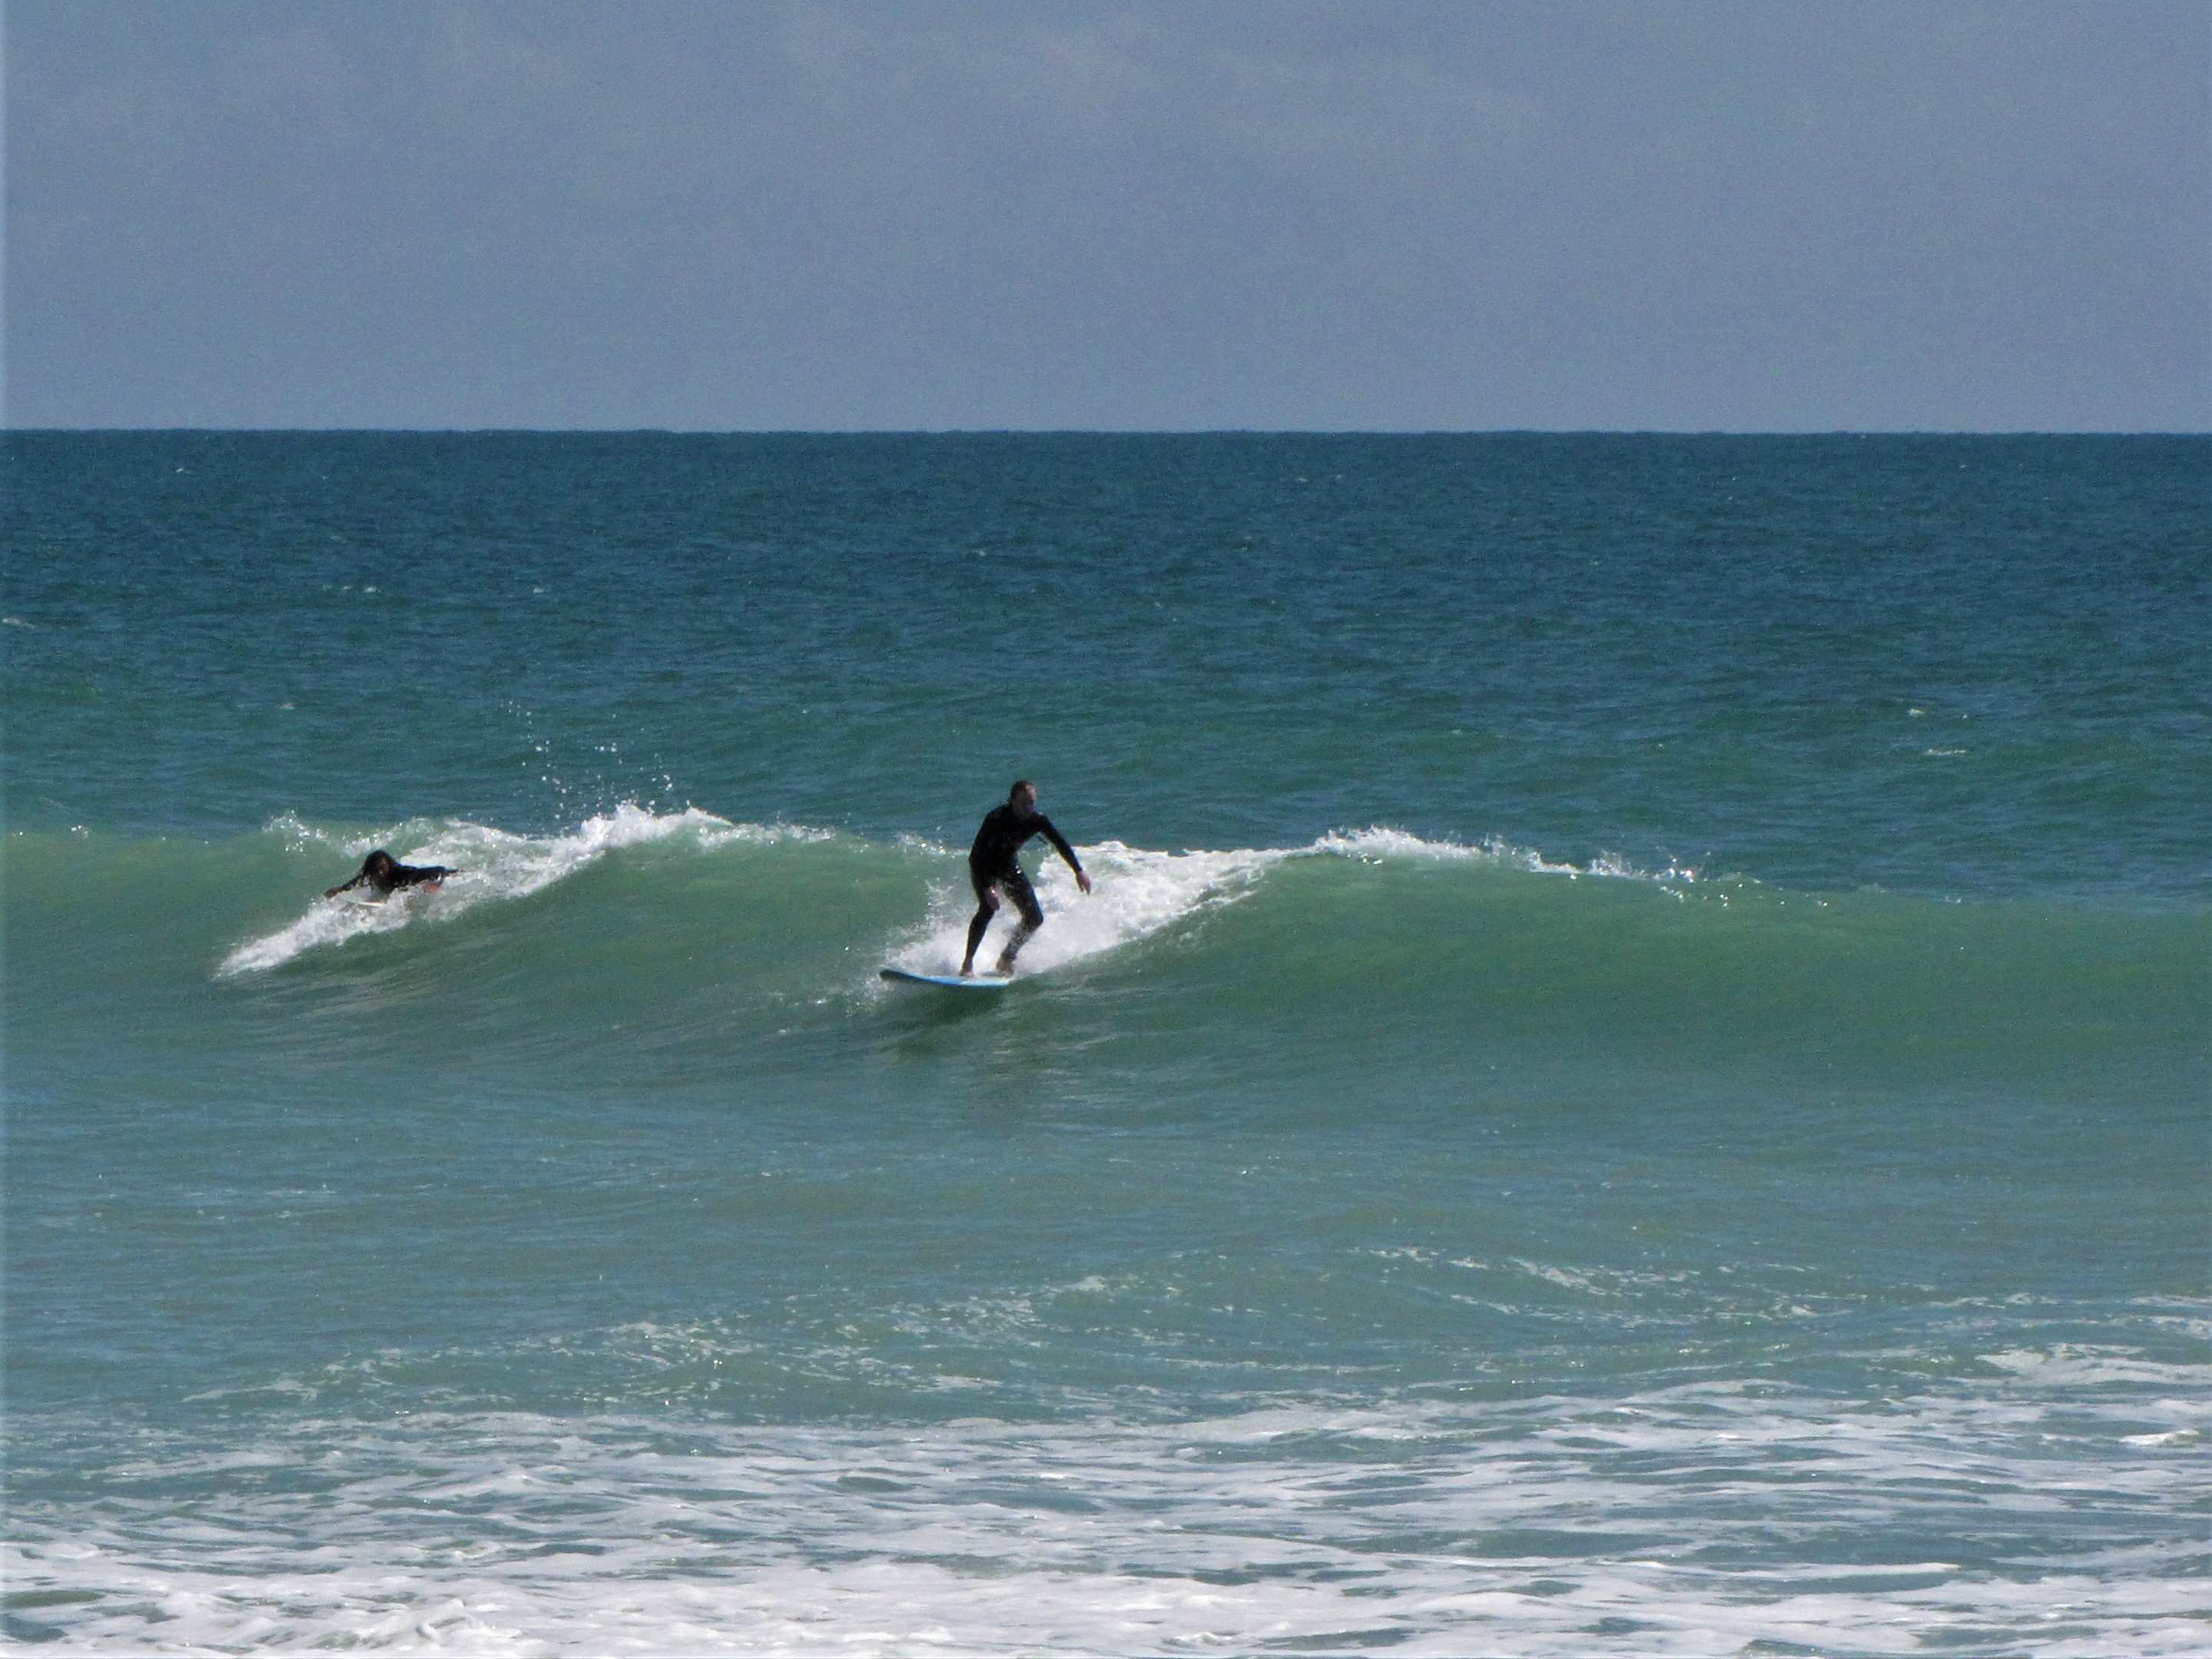 stoked dutch surfer on a wave in Lagos Algarve Portugal